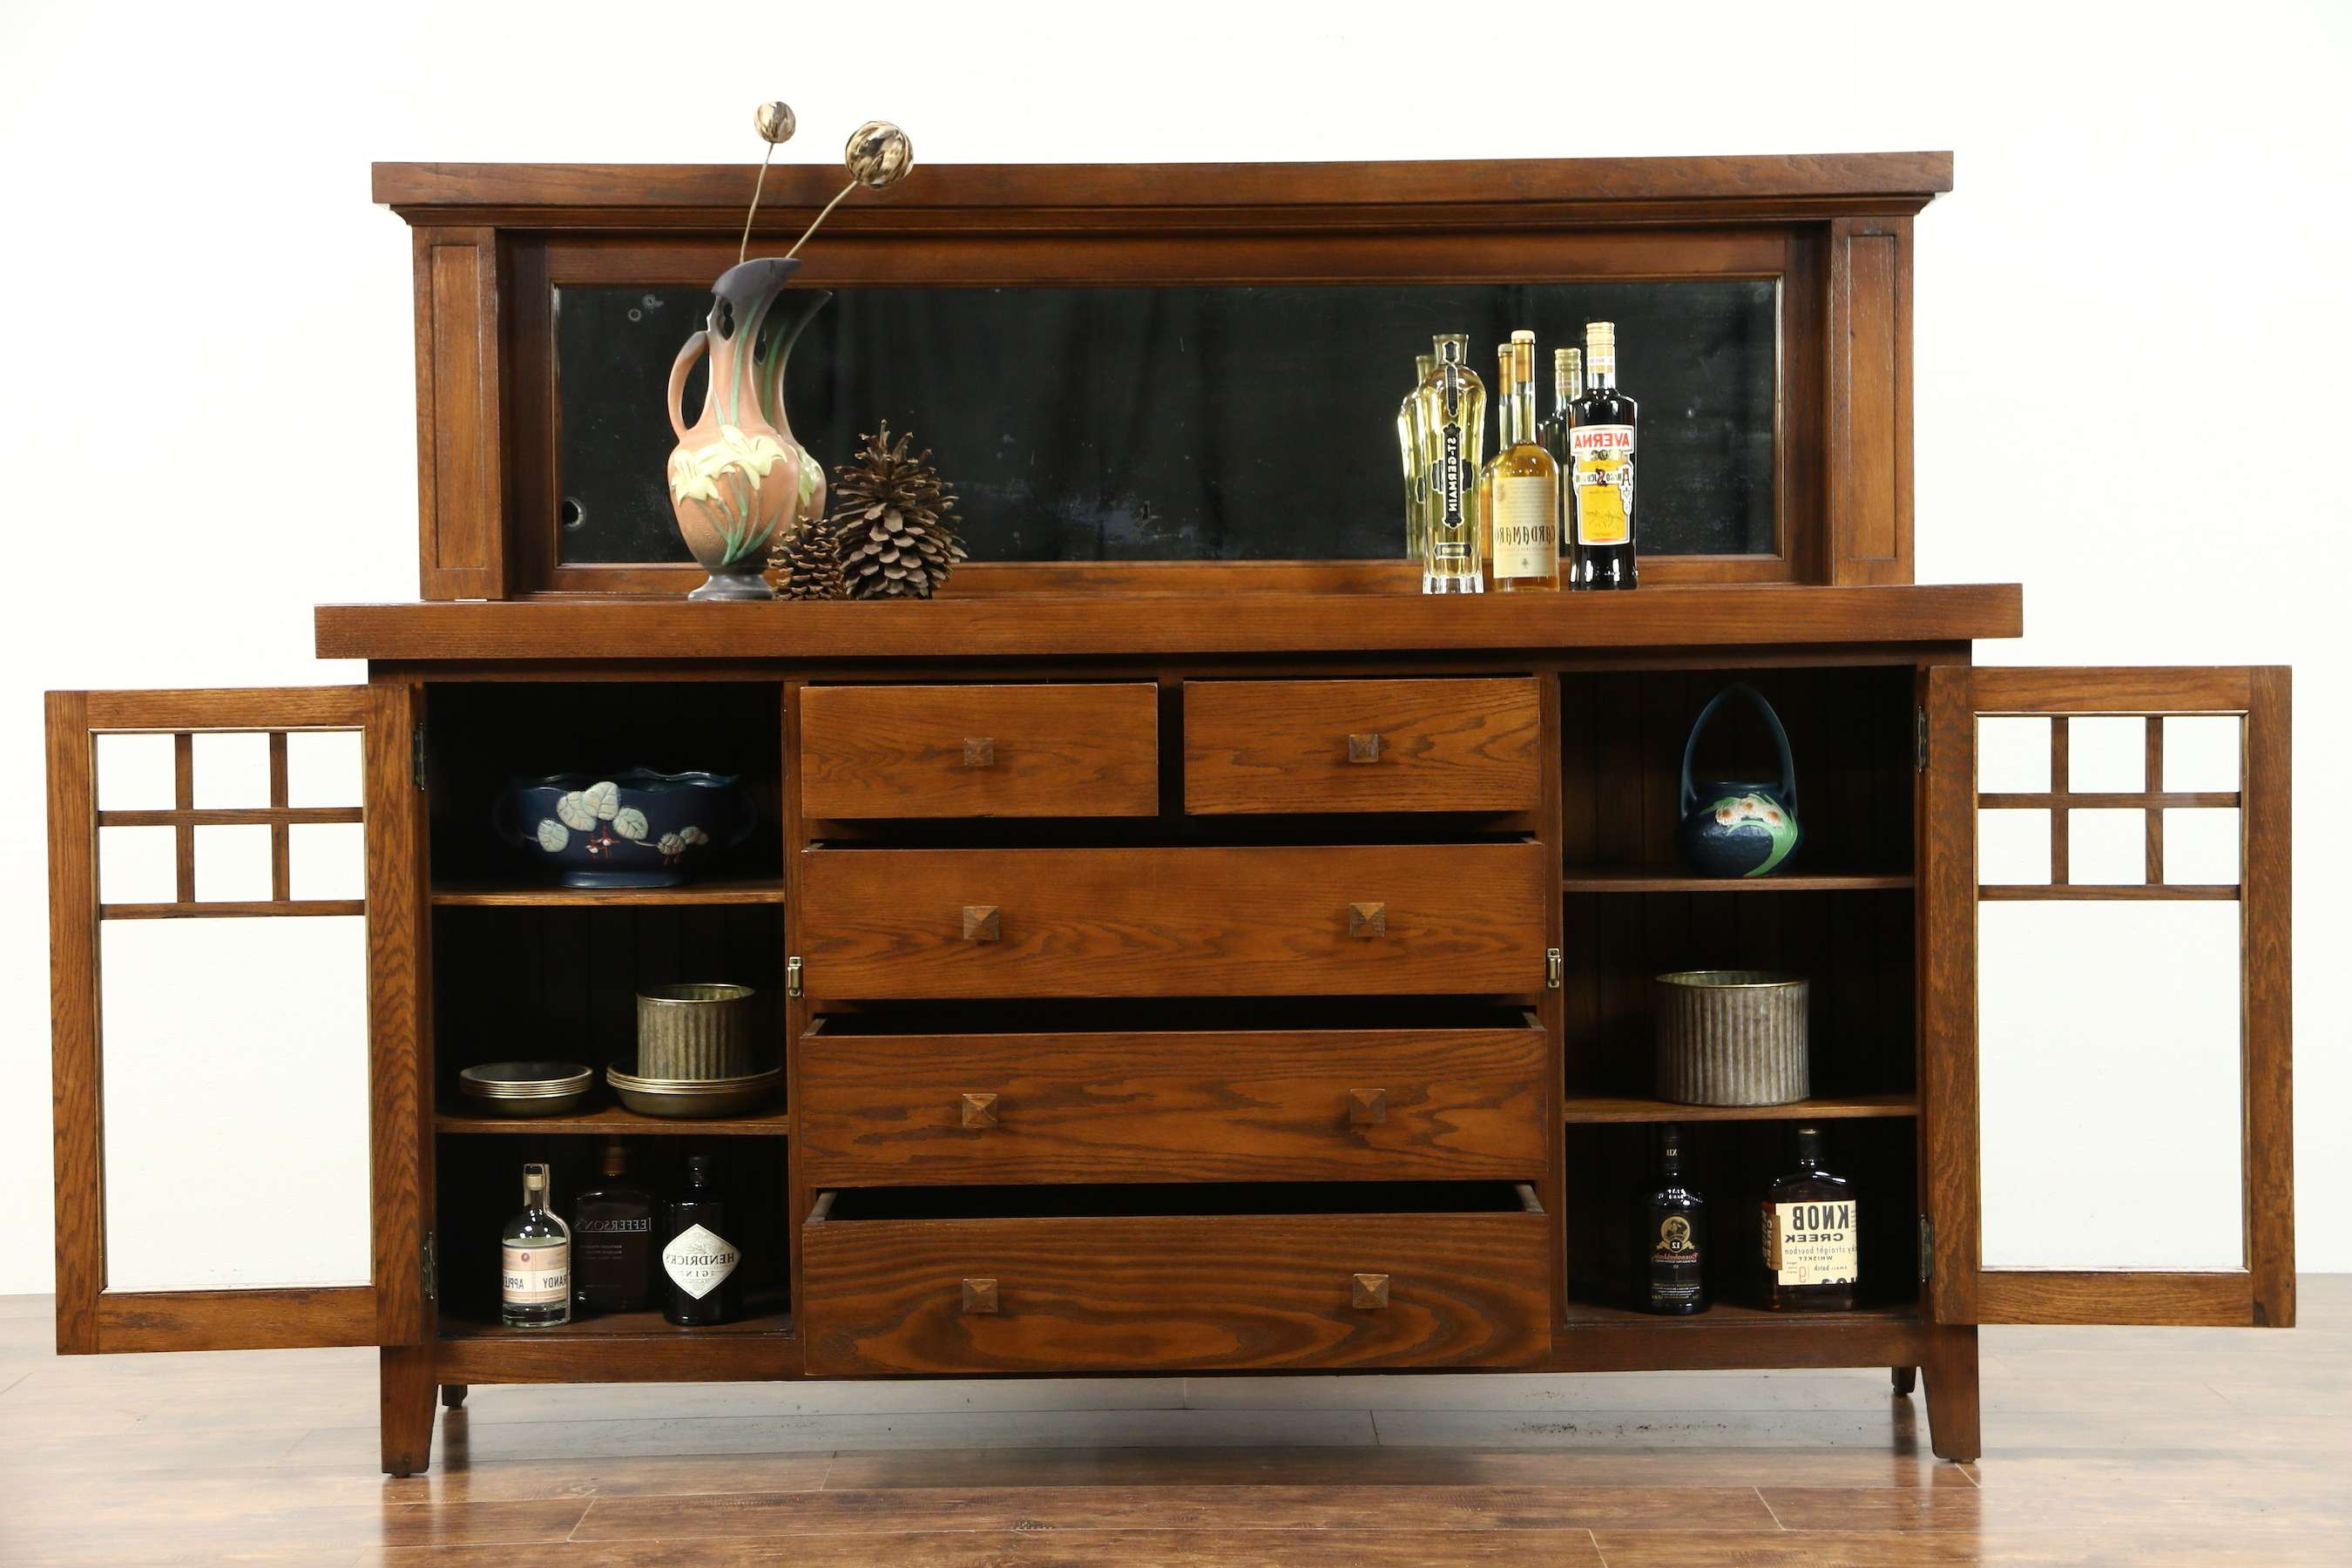 Sold Sideboards, Demilune – Harp Gallery Antiques Inside Mission Style Sideboards (View 19 of 20)